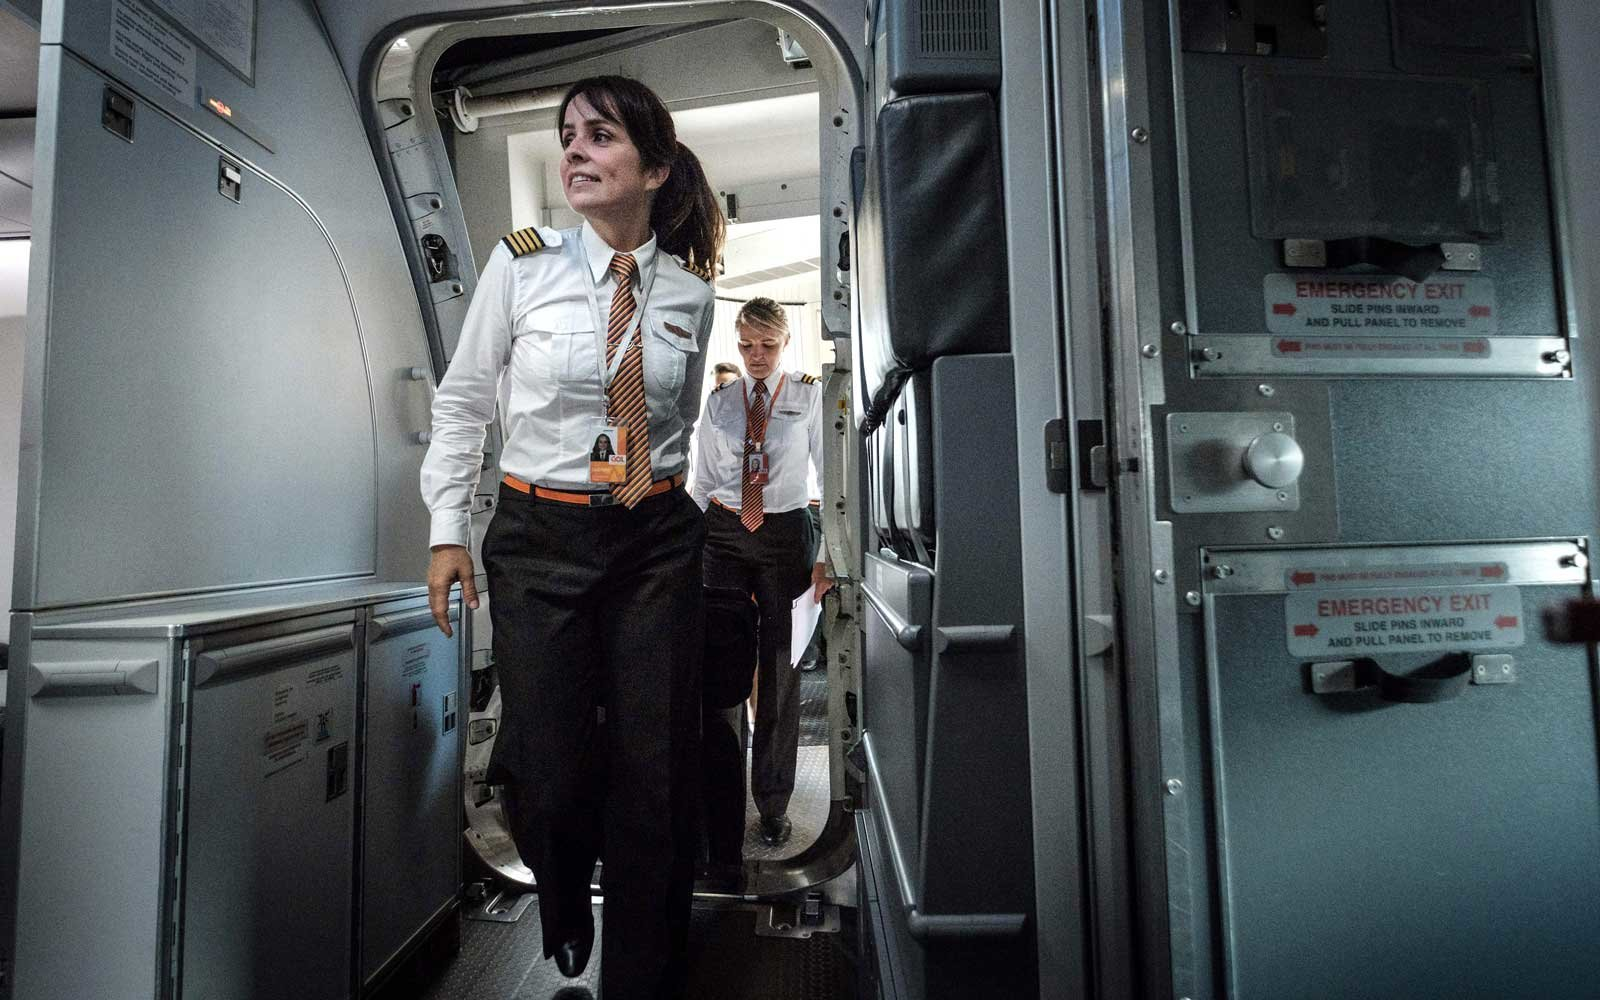 Female Flight Crew